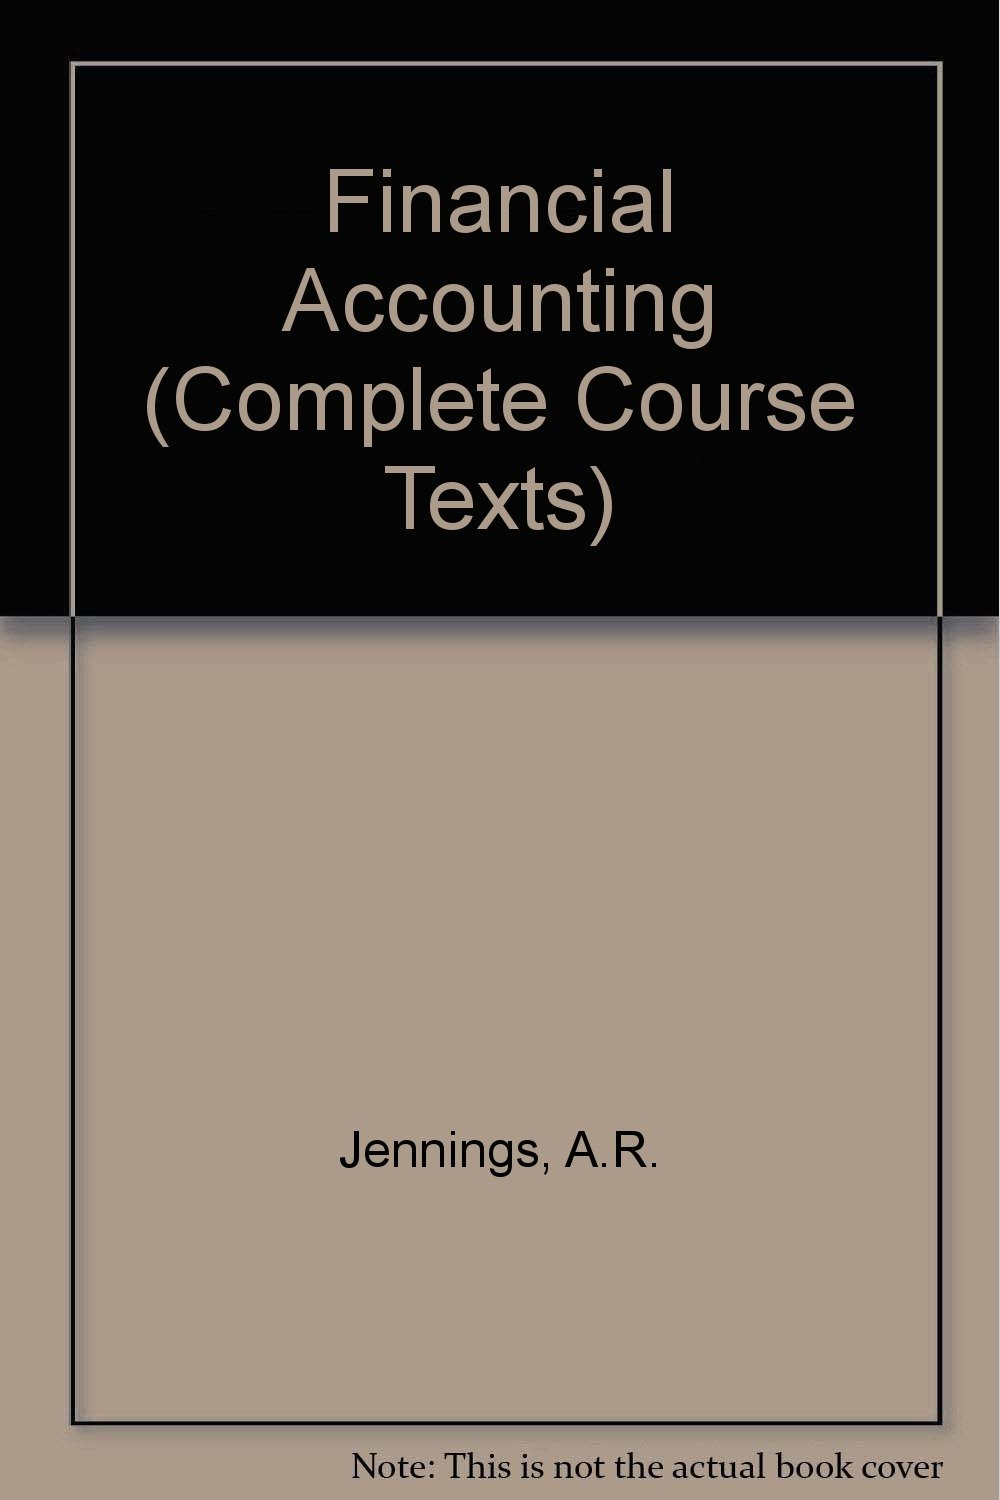 Financial Accounting (Complete Course Texts): A. R. Jennings:  9781870941594: Amazon.com: Books